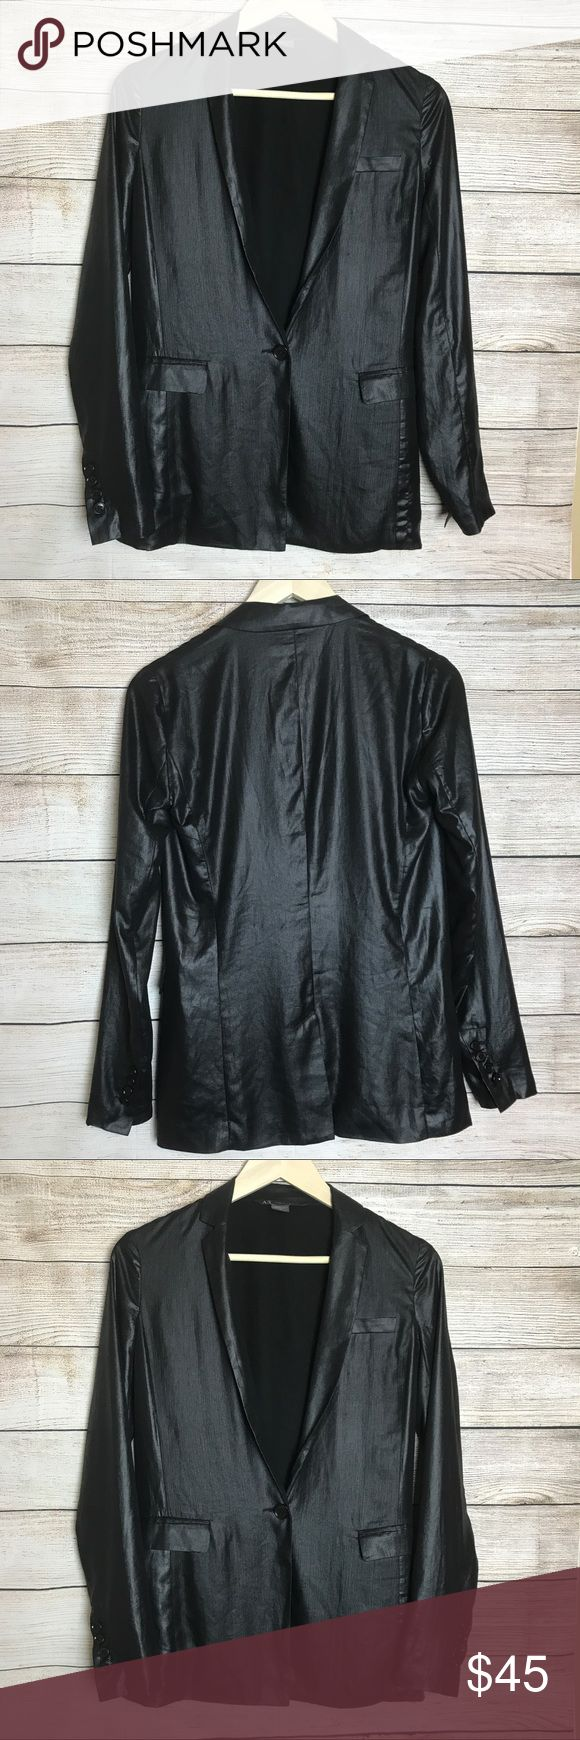 Armani Exchange Black Wet Look Blazer SZ 0 Type: Jacket 